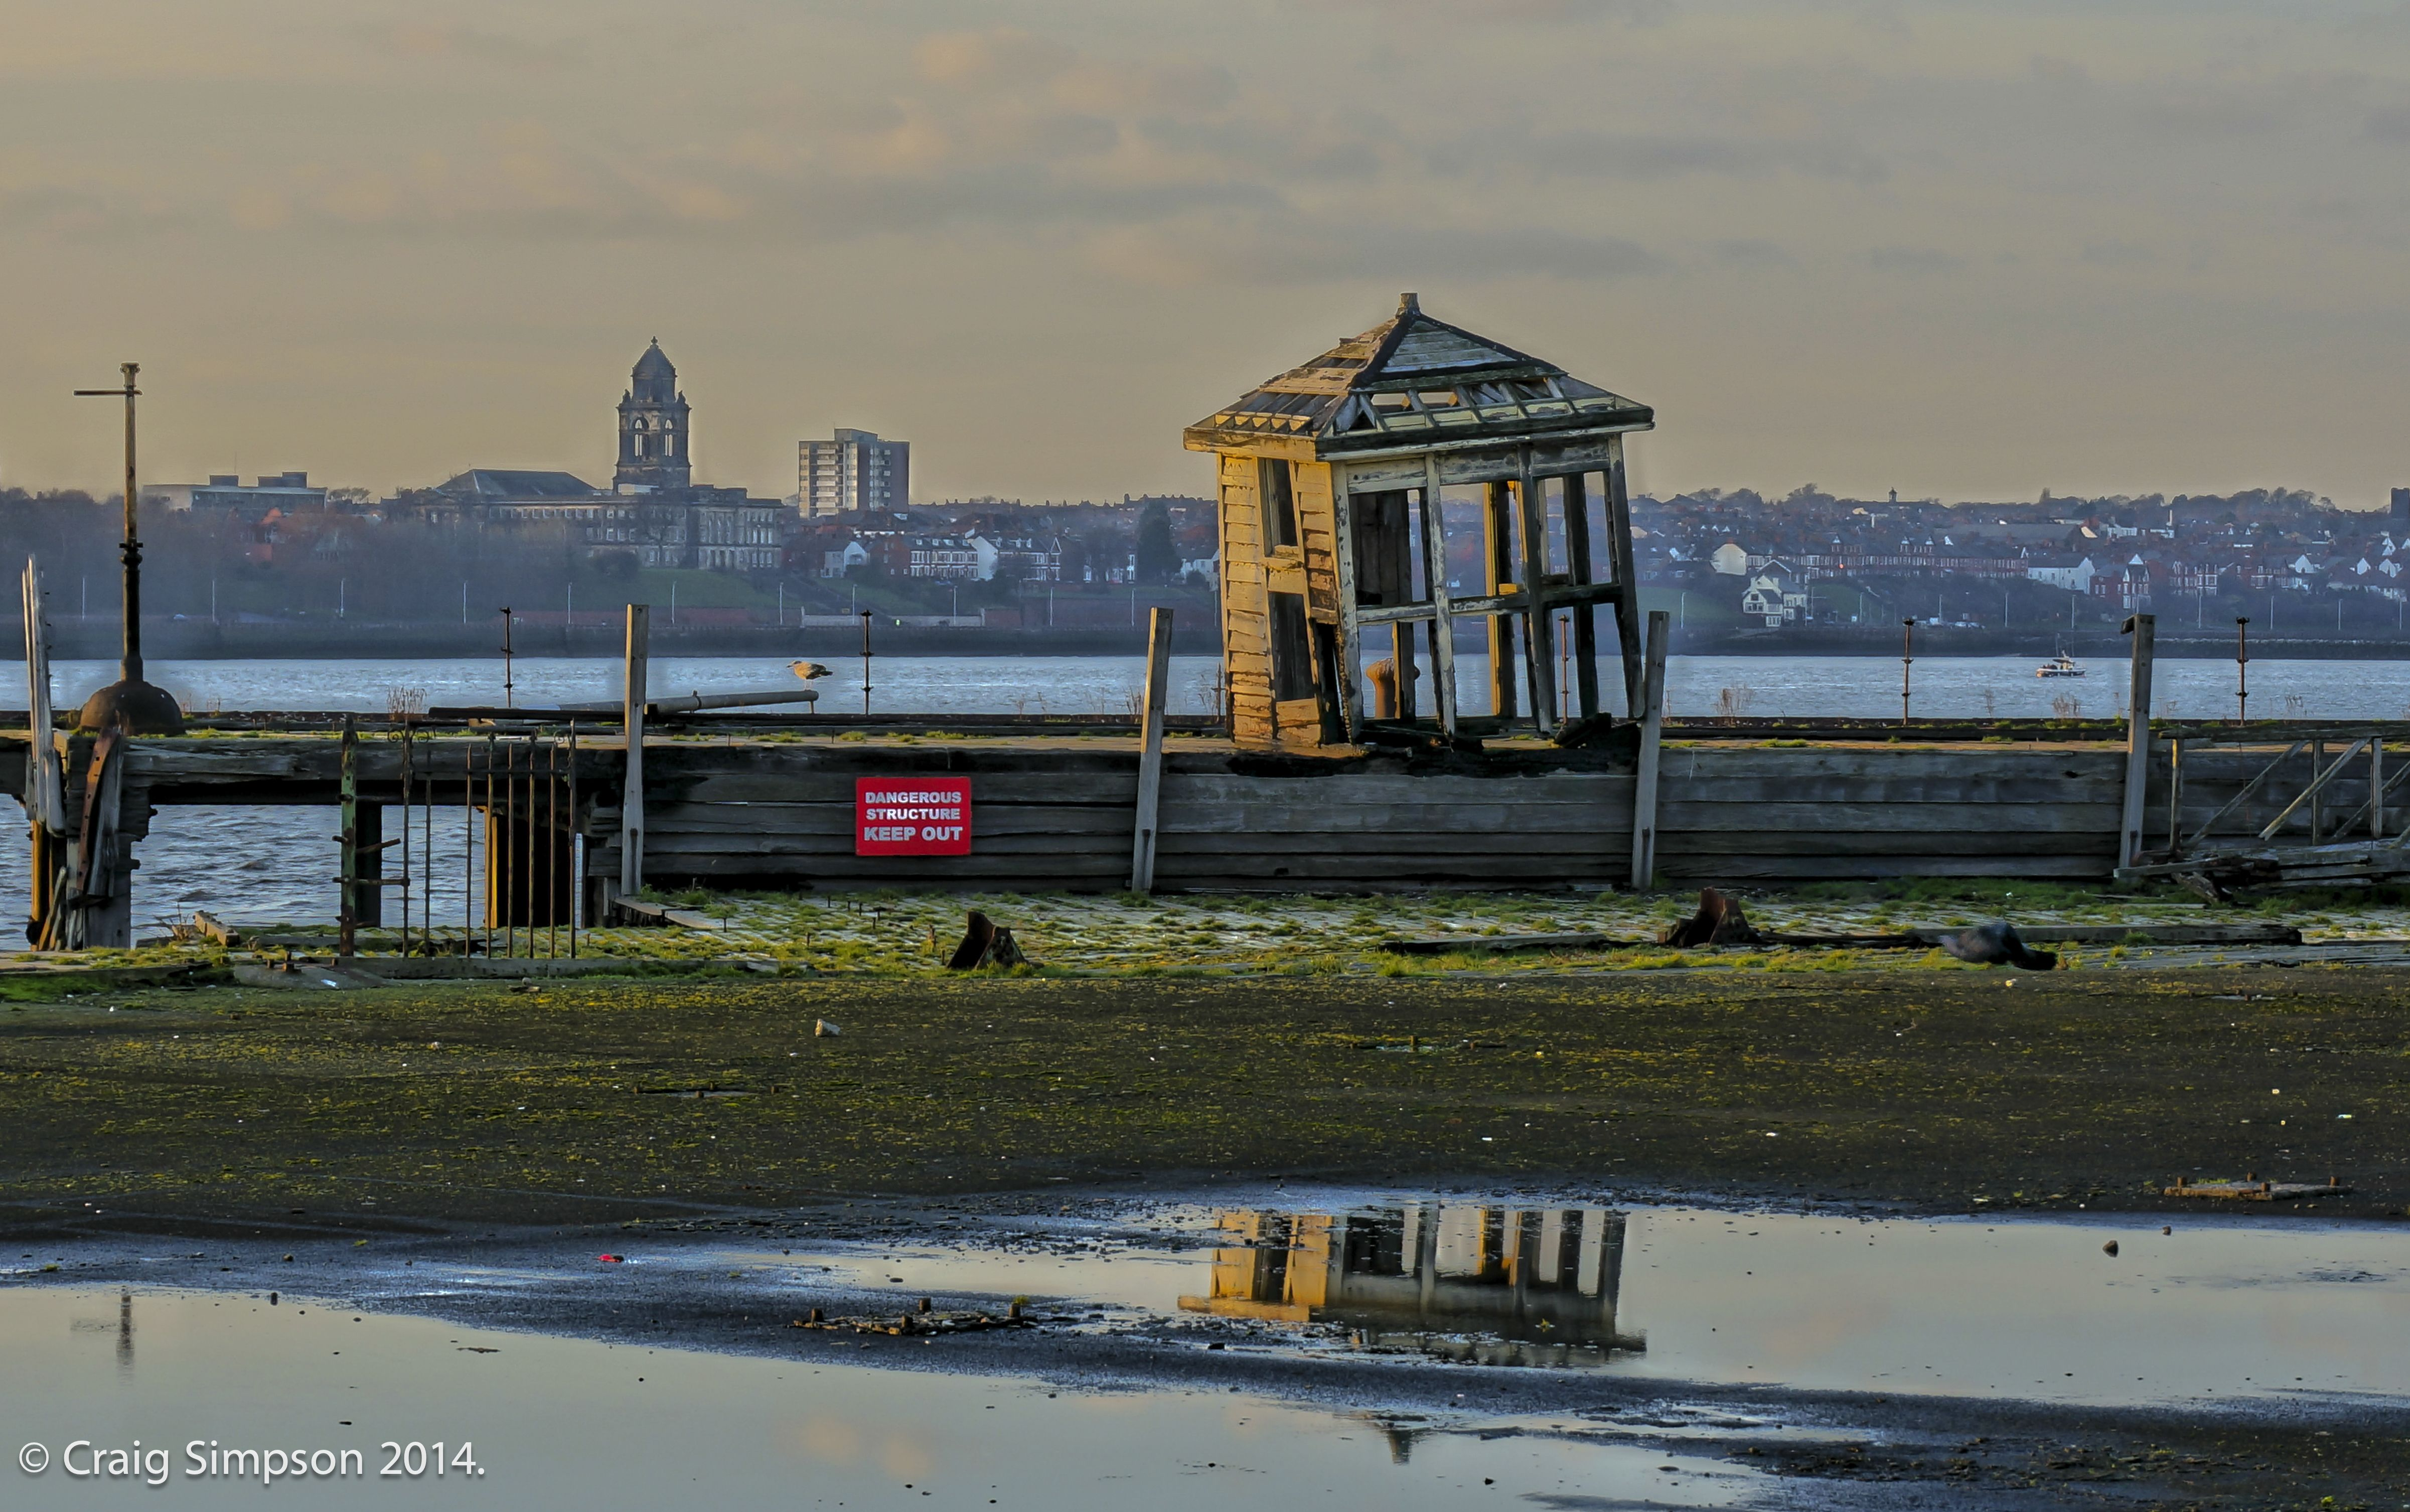 Looking across to the Wirral from Liverpool, Lancashire, England. 30th December 2014.